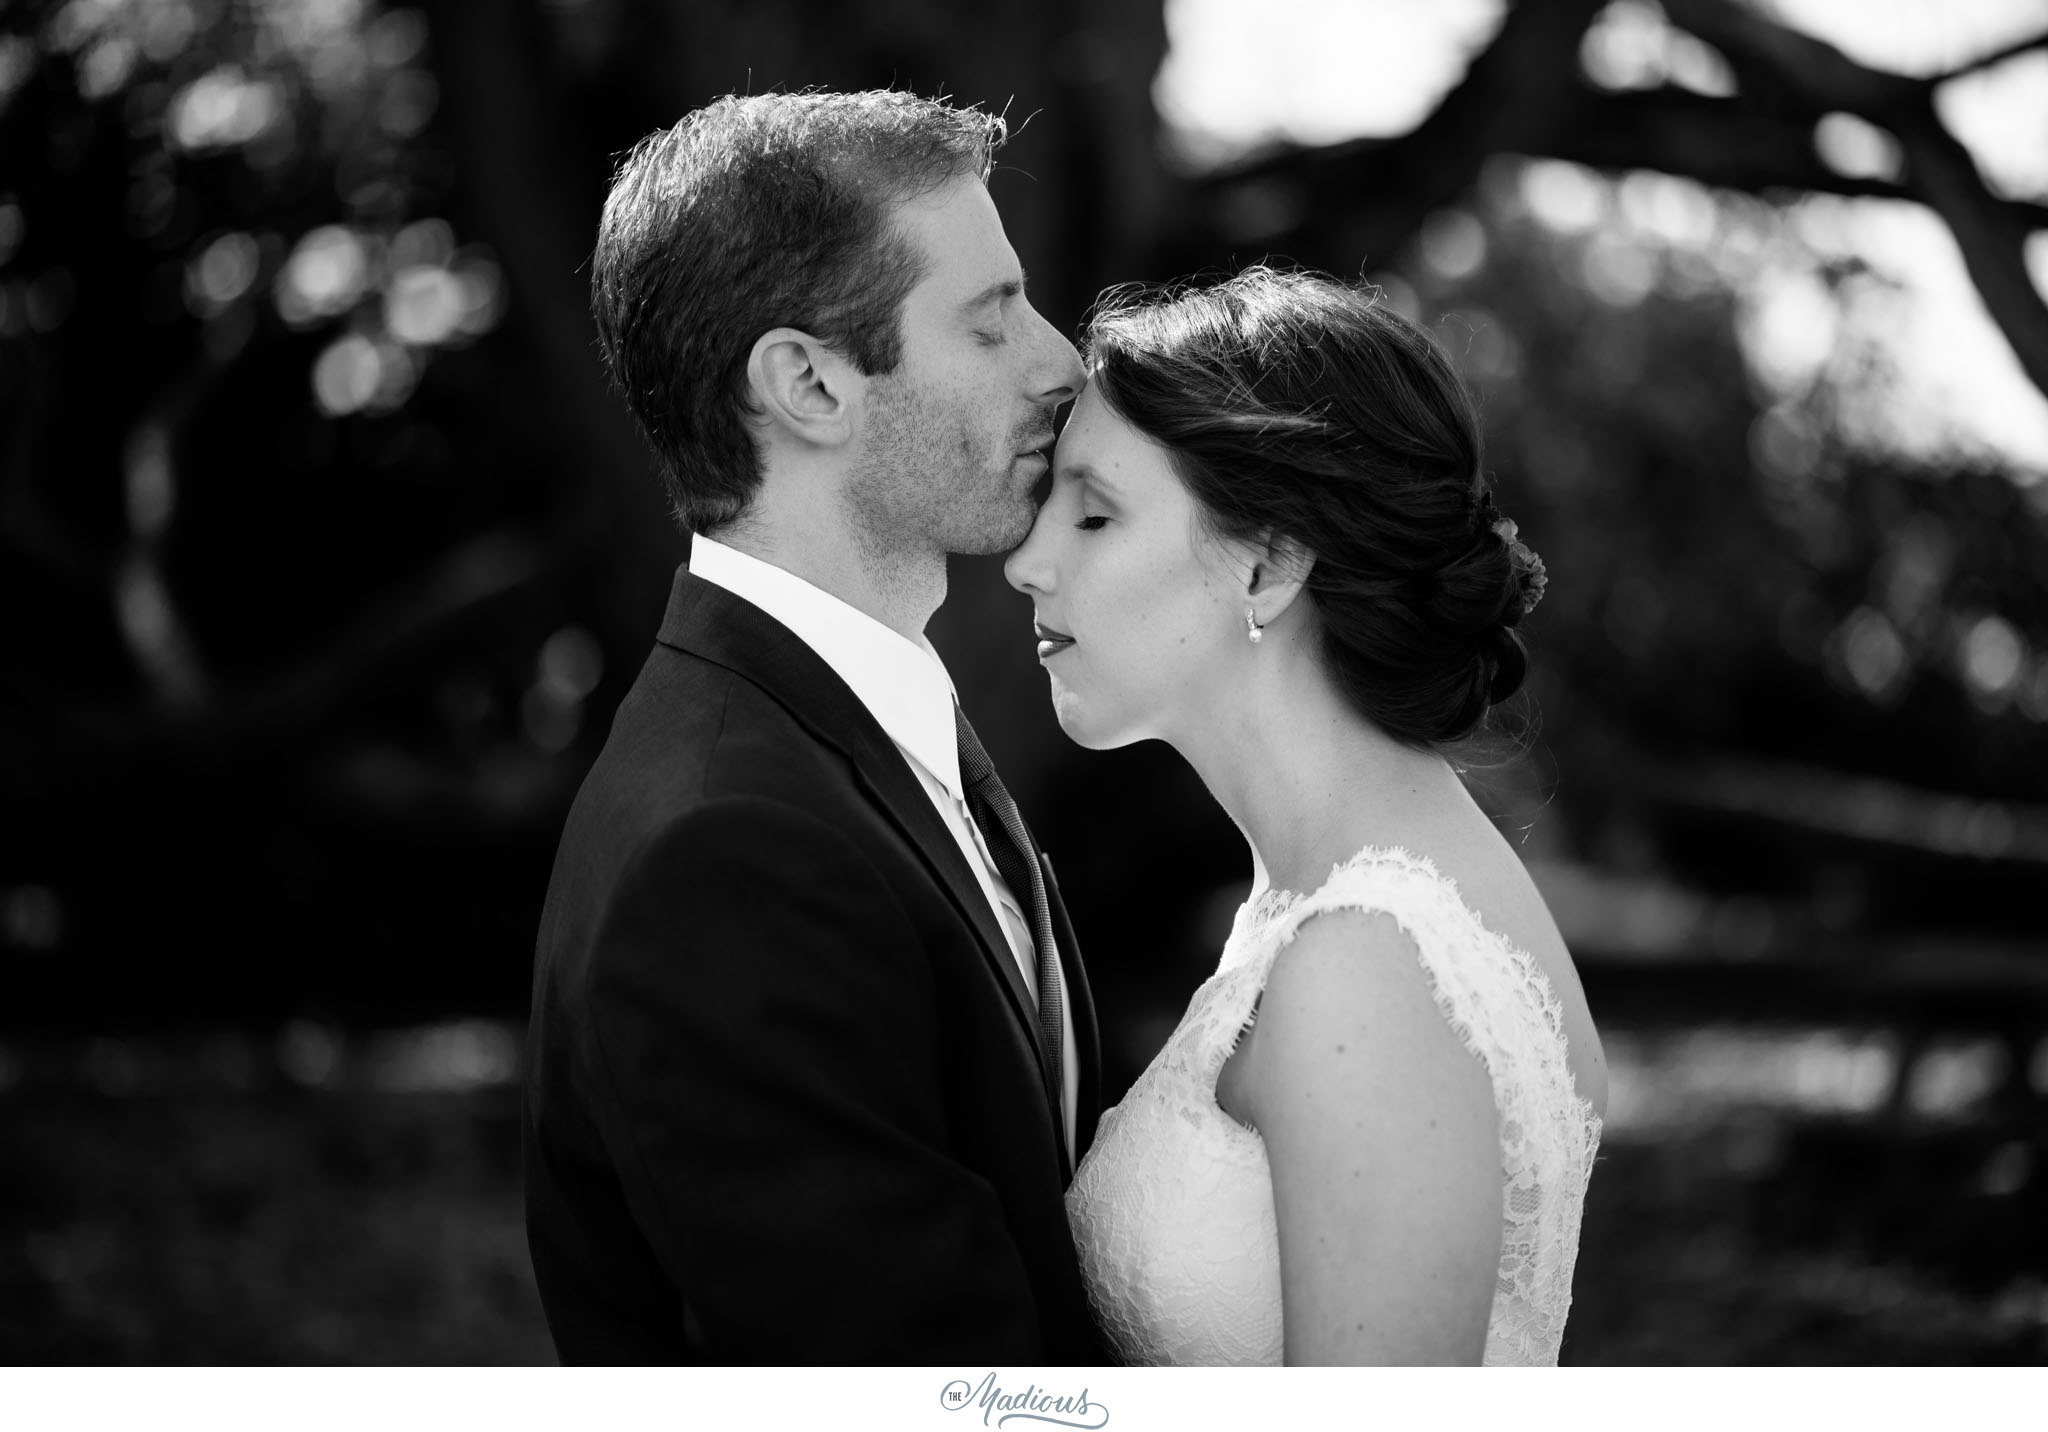 Cylburn Arboretum wedding photojournalism bride groom portraits love